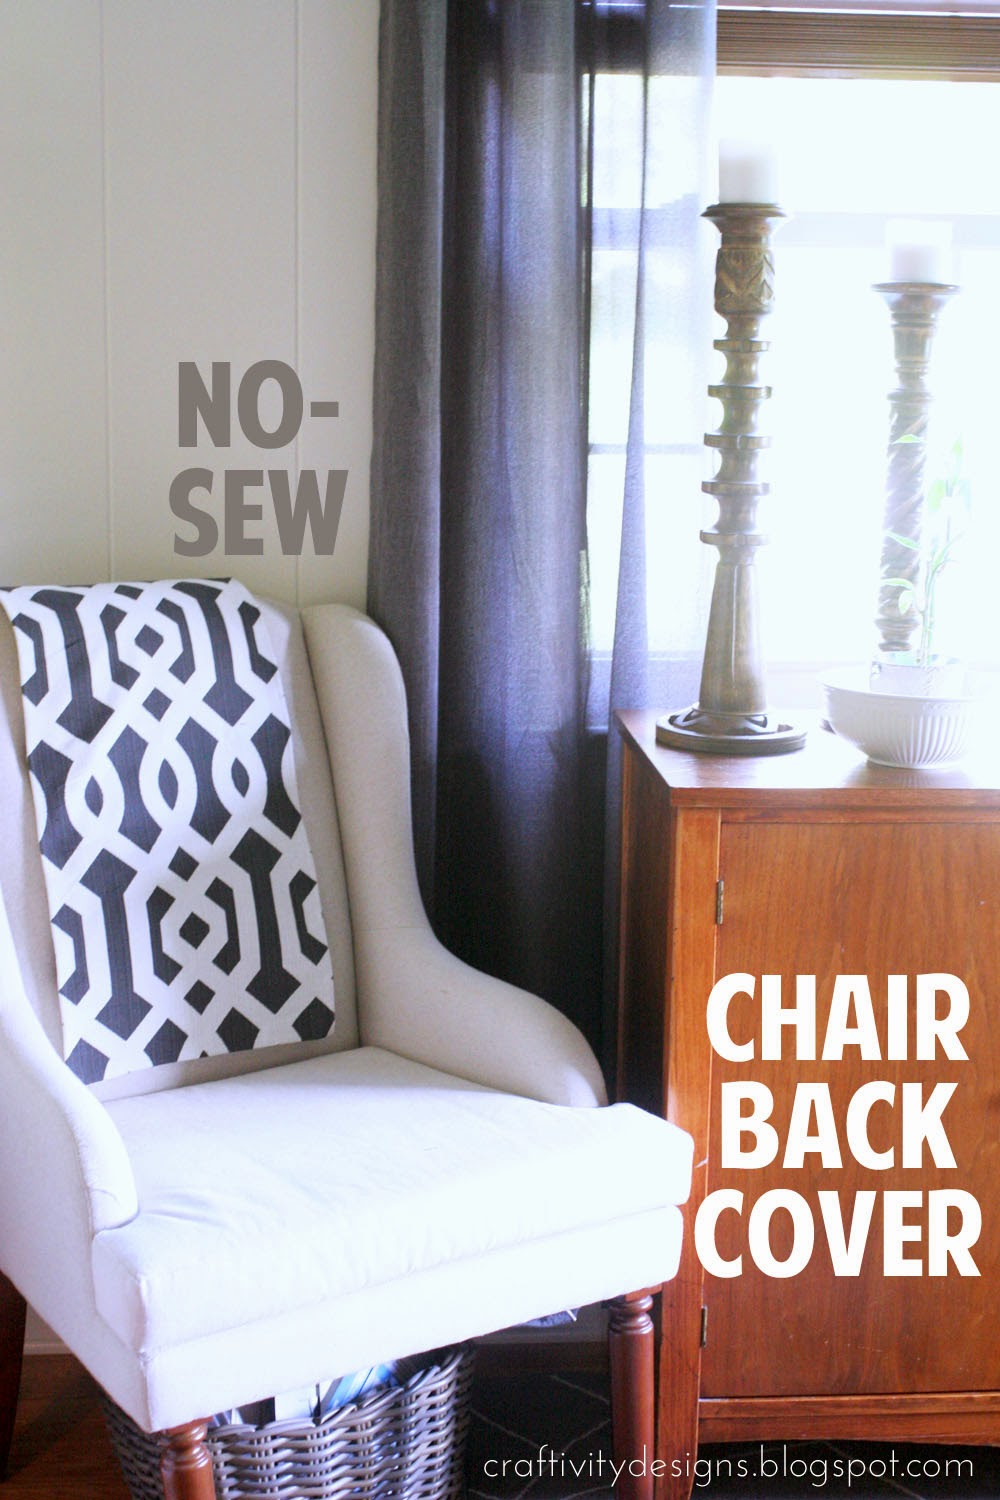 NoSew Chair Back Covers Craftivity Designs